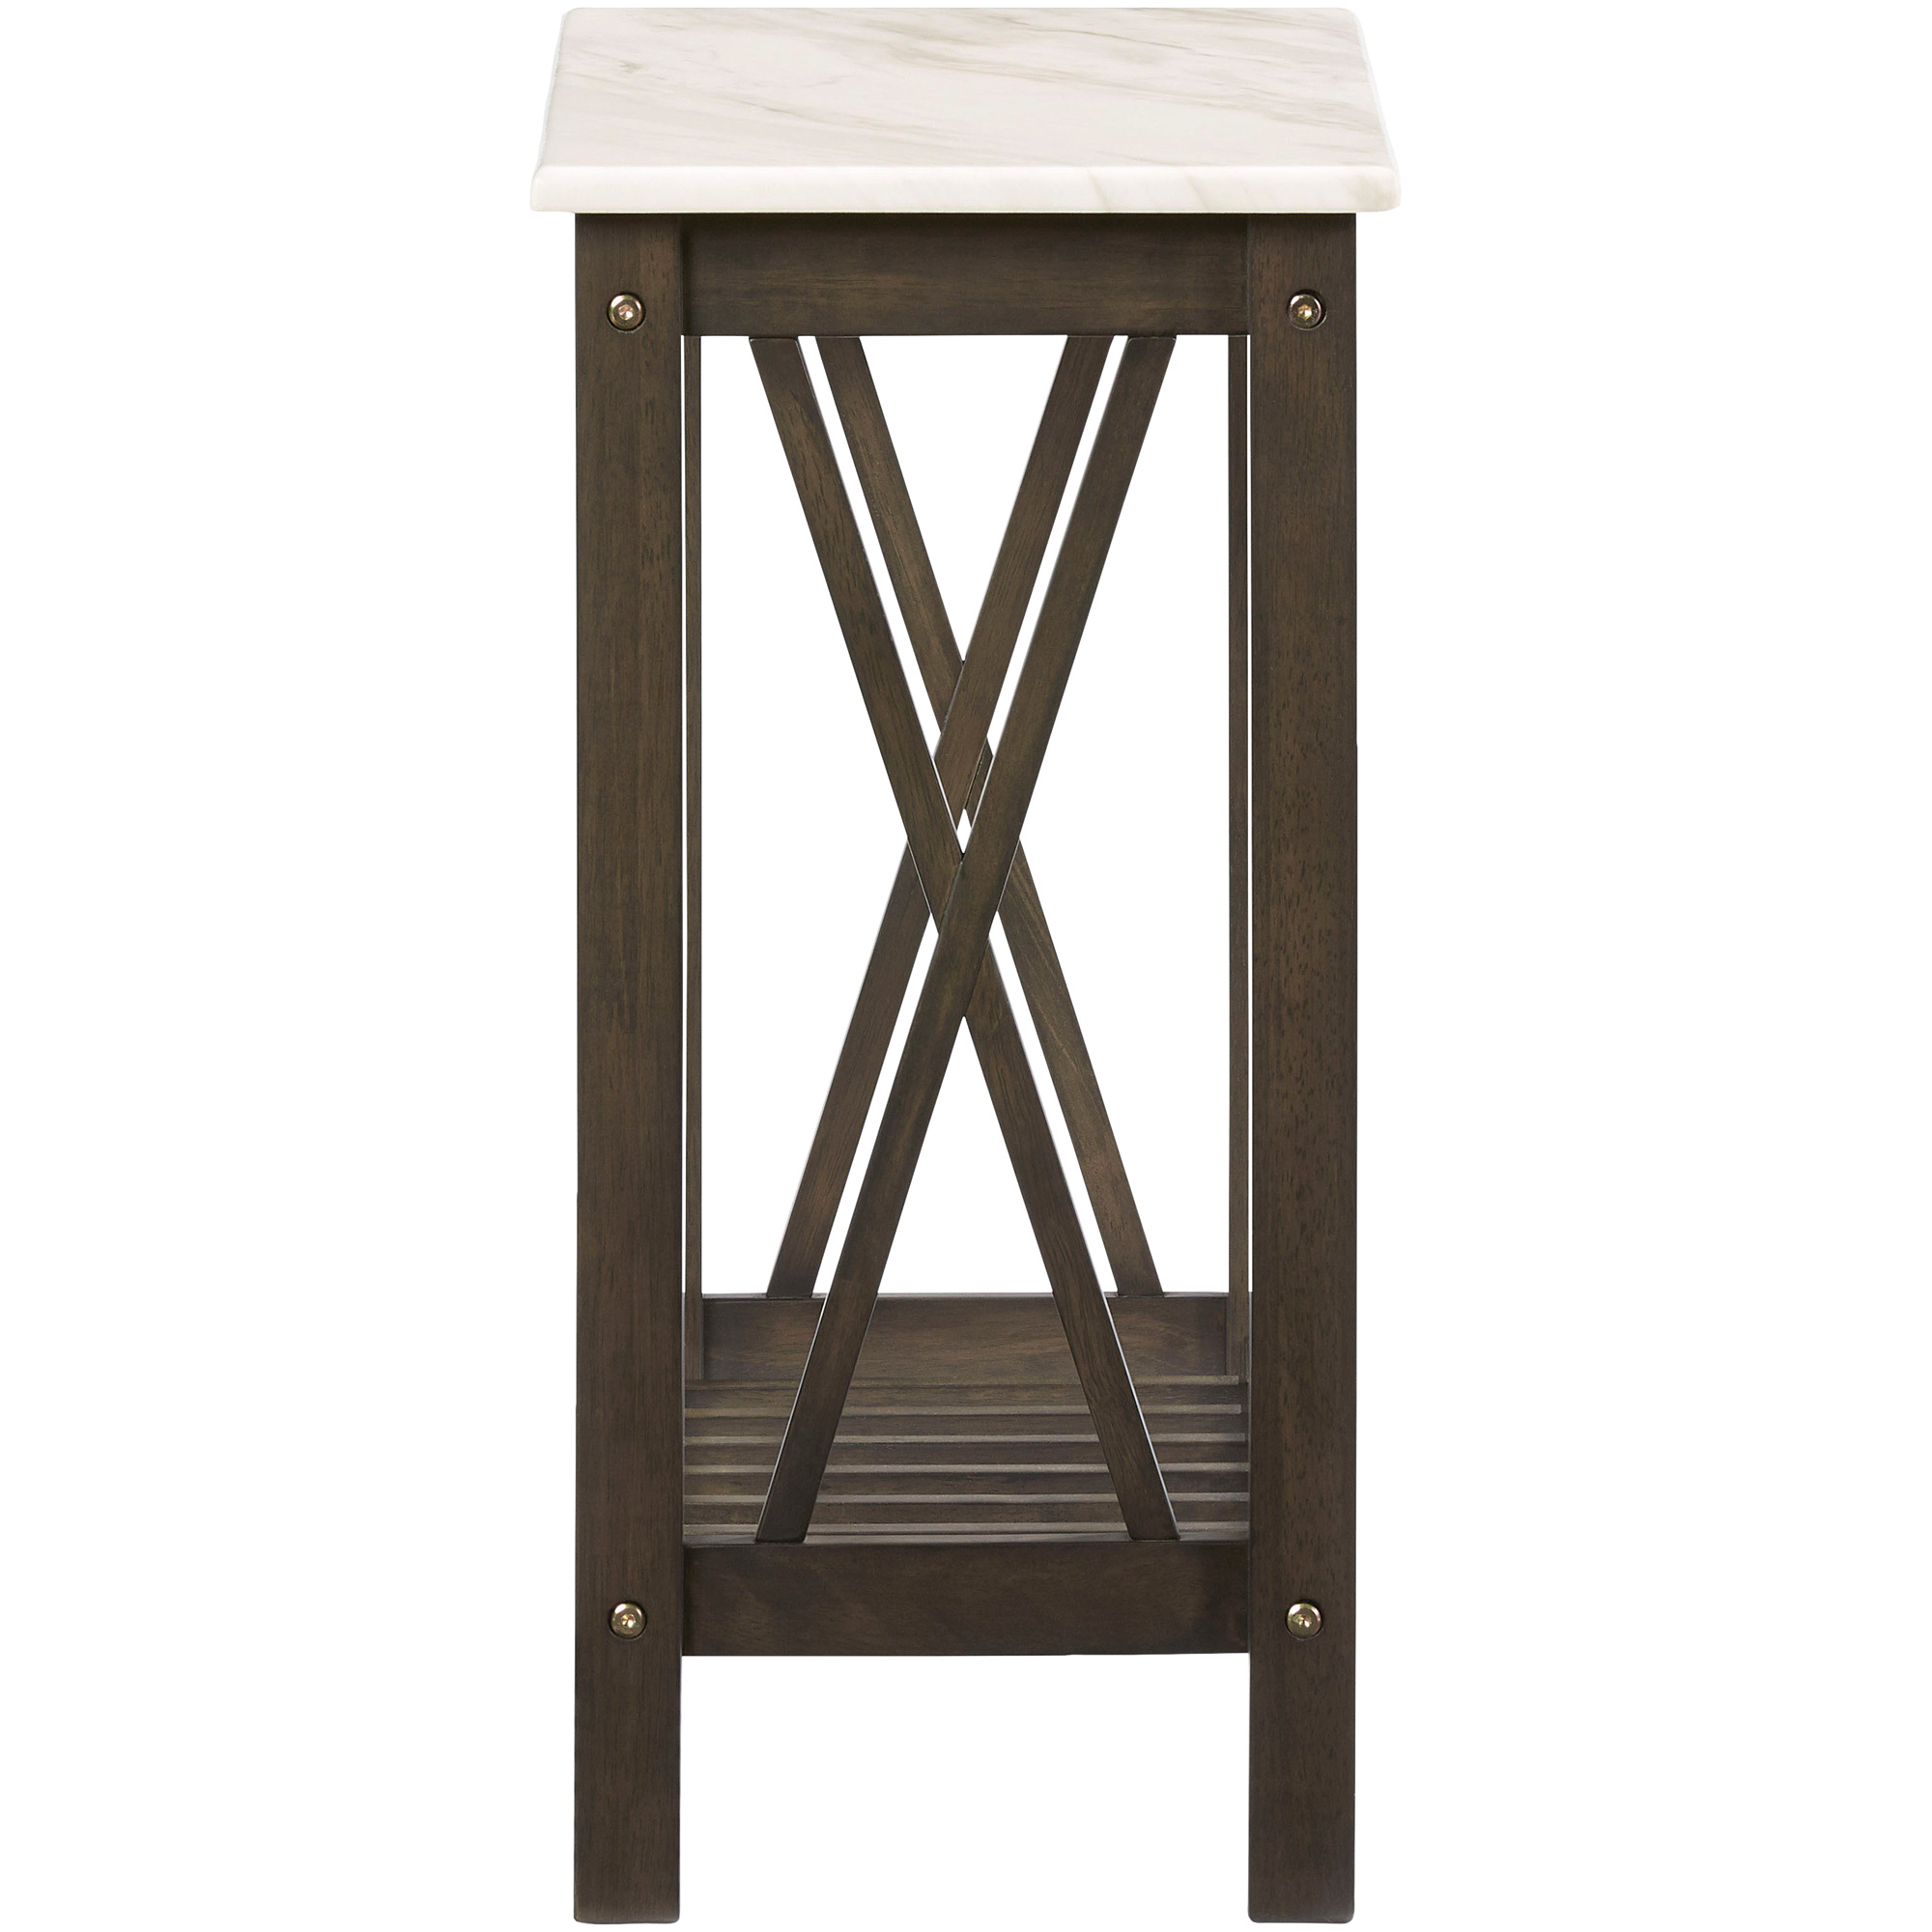 Progressive | Chairsides III Brown Chairside Table